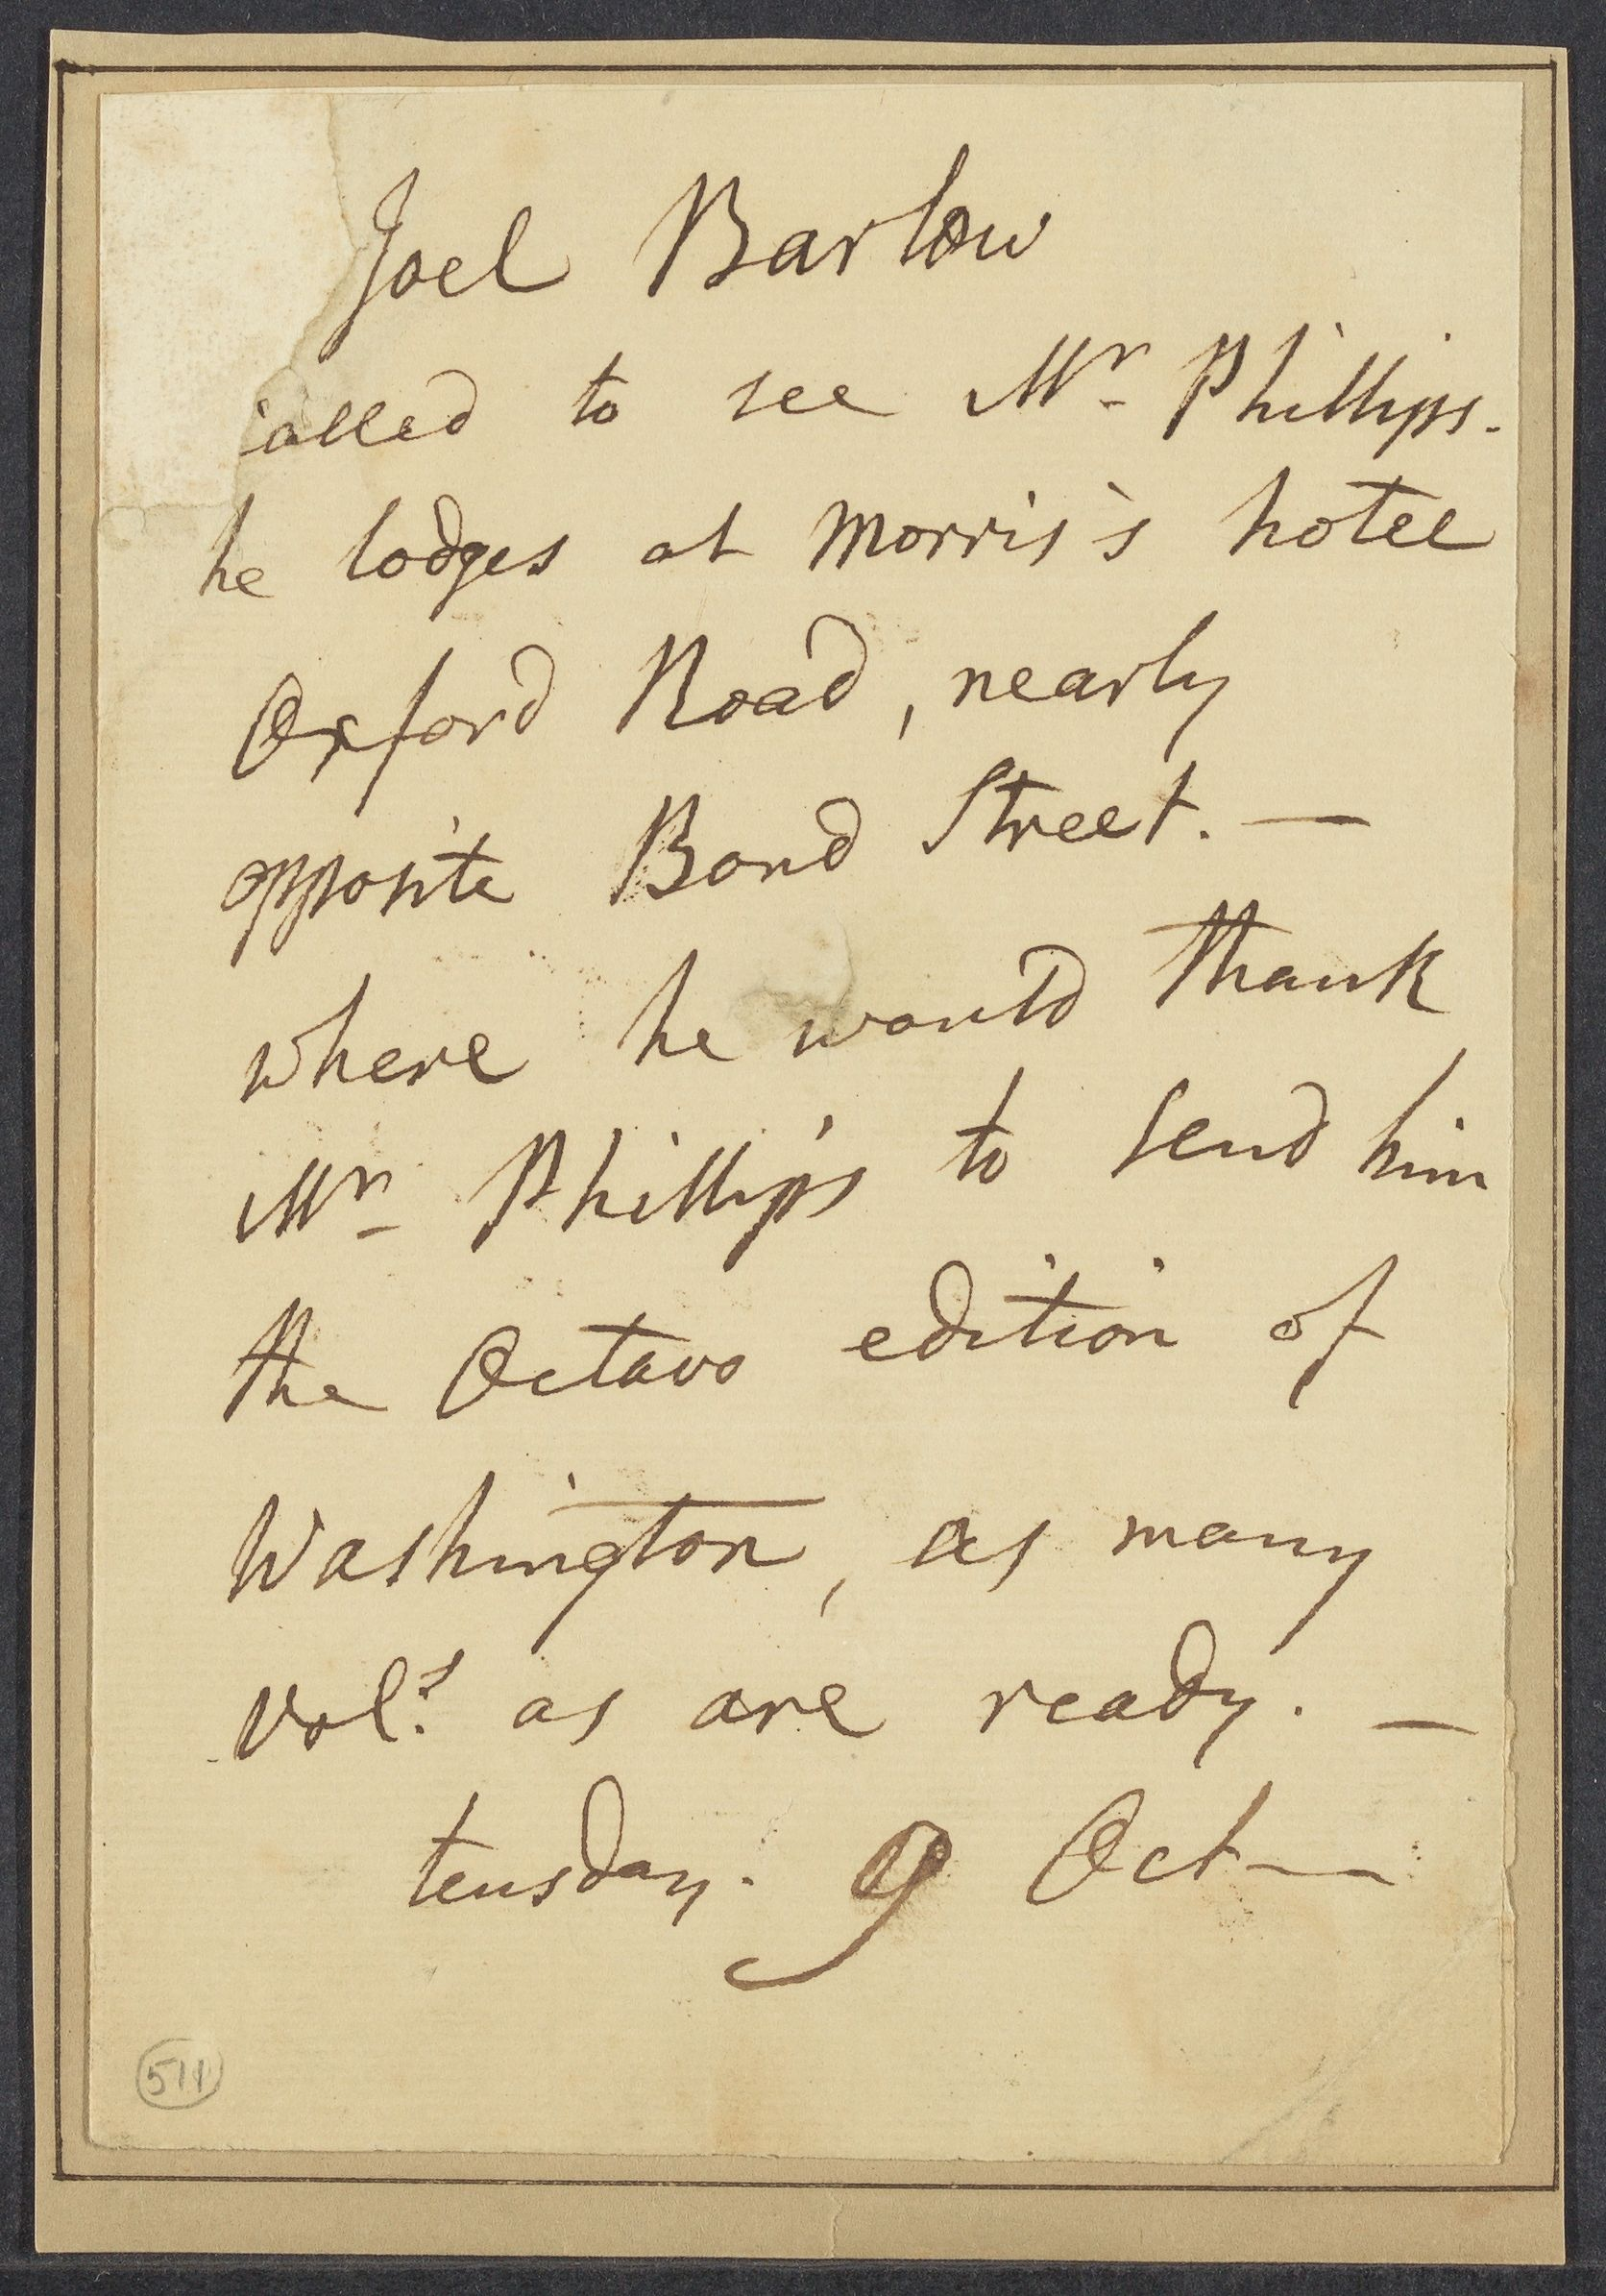 Barlow, Joel, 1754-1812. Letter to [ ] Phillips; [London] 9 Oct [179- ]